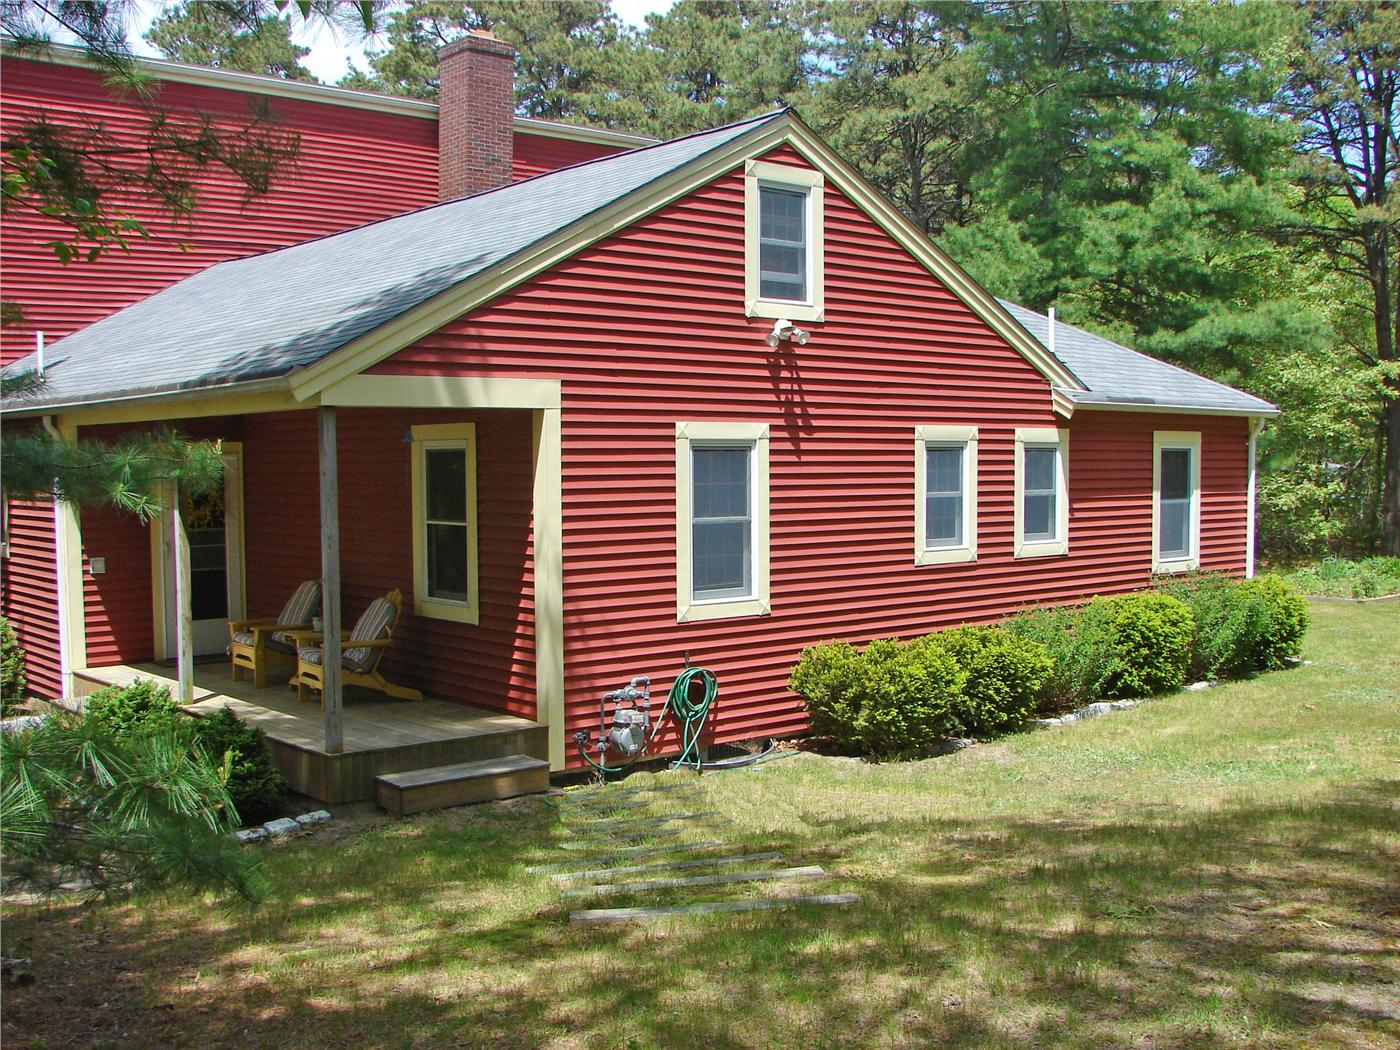 ma cottages truro provincetown property studio in directions b road cottage maps prop s pamet